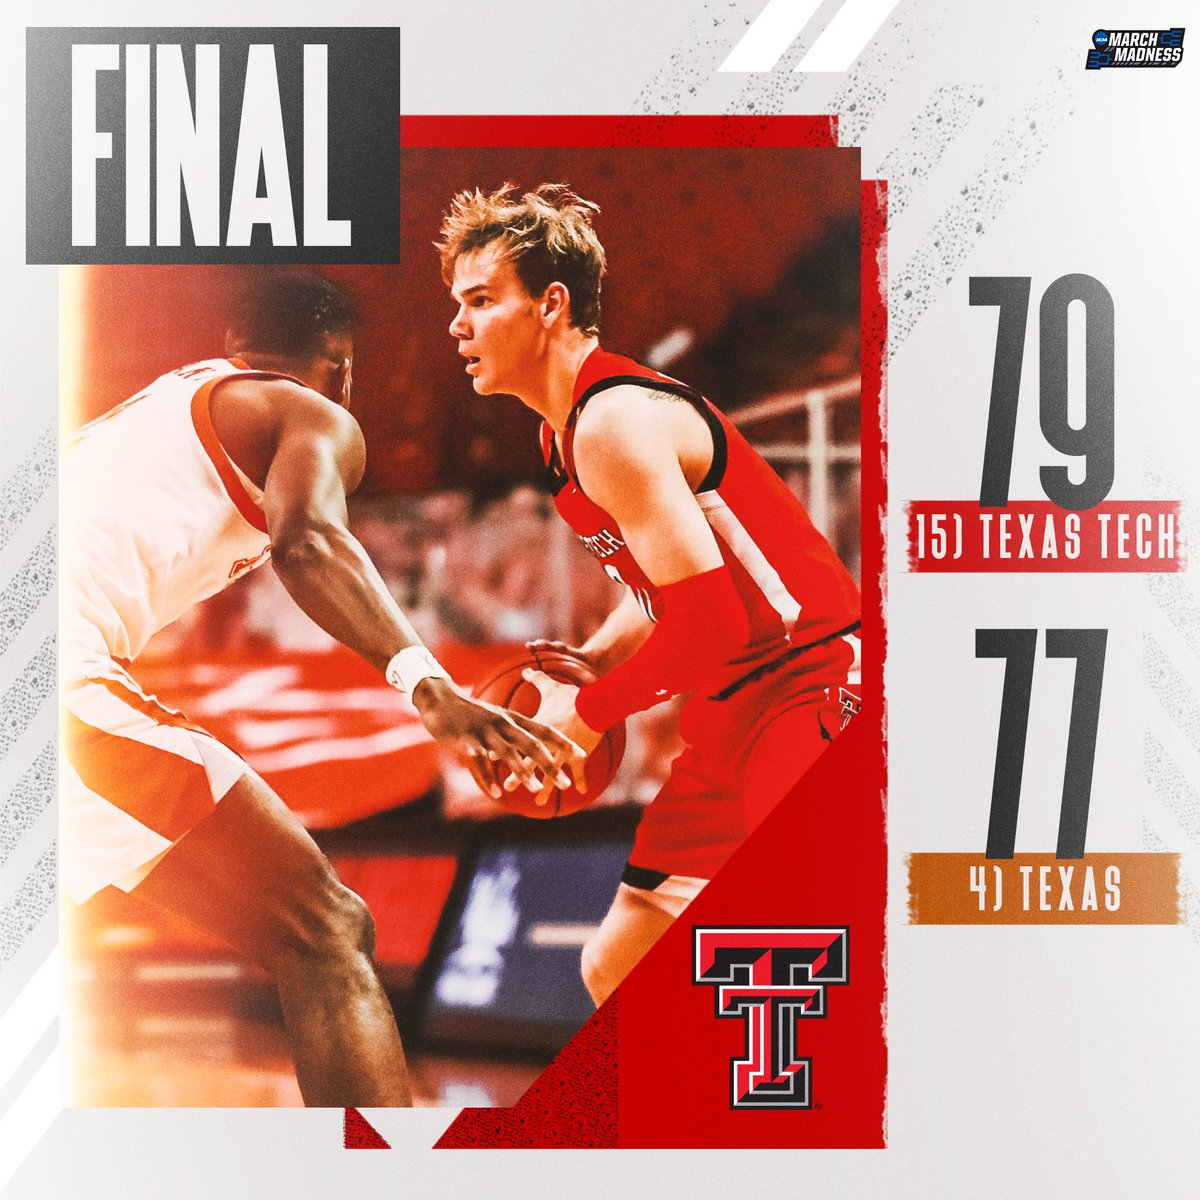 @marchmadness's photo on Texas Tech